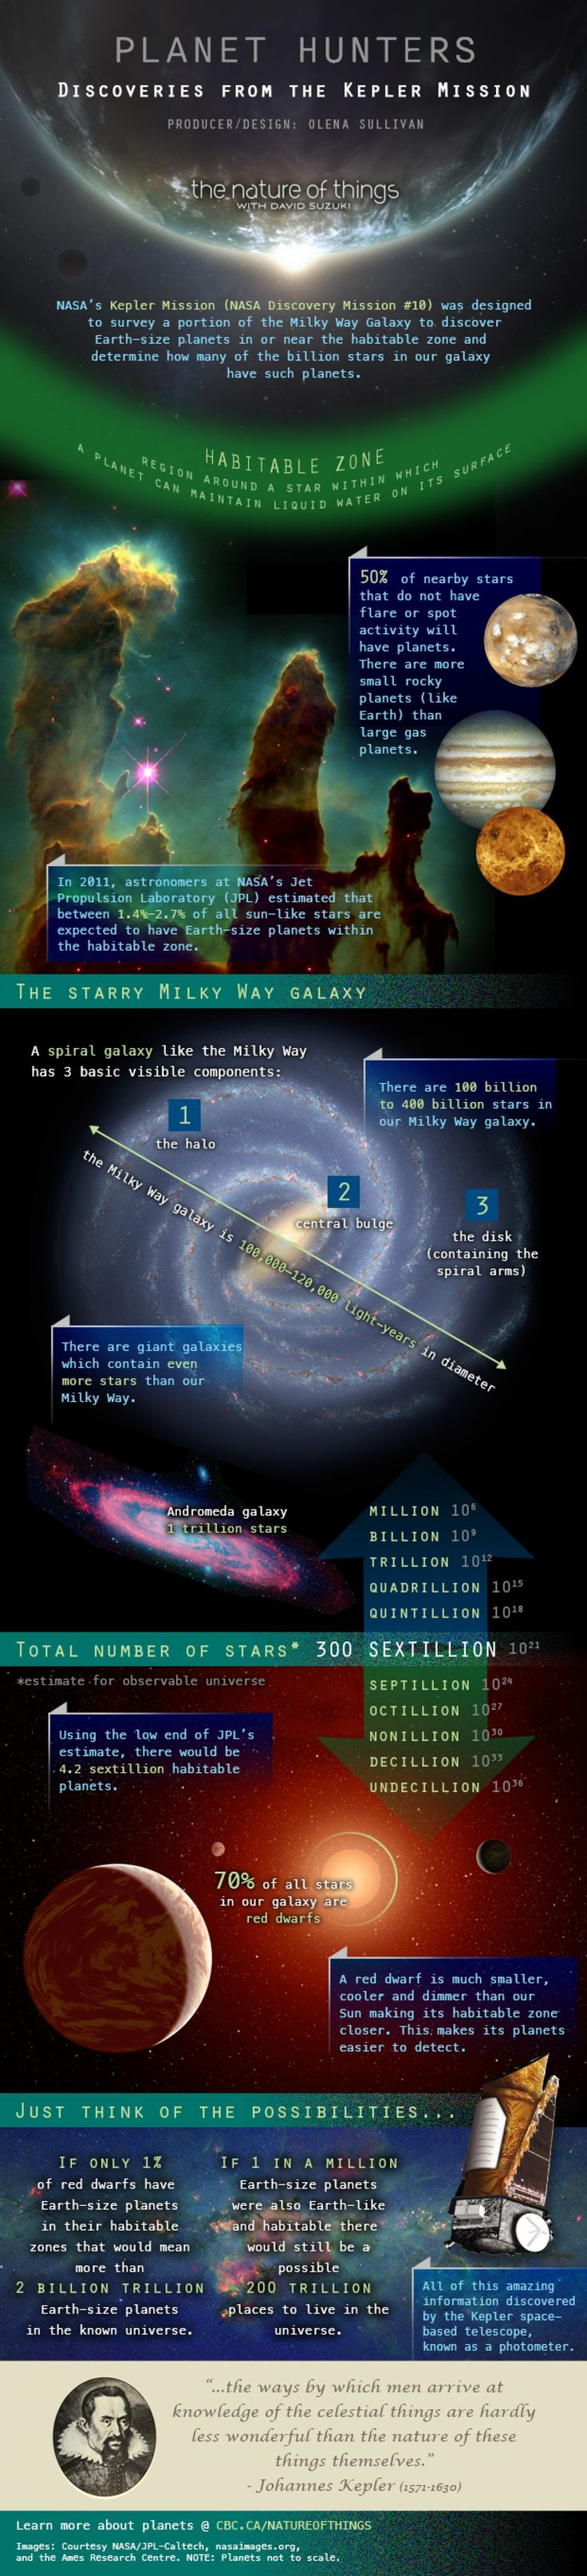 Discoveries from the Kepler Mission Infographic